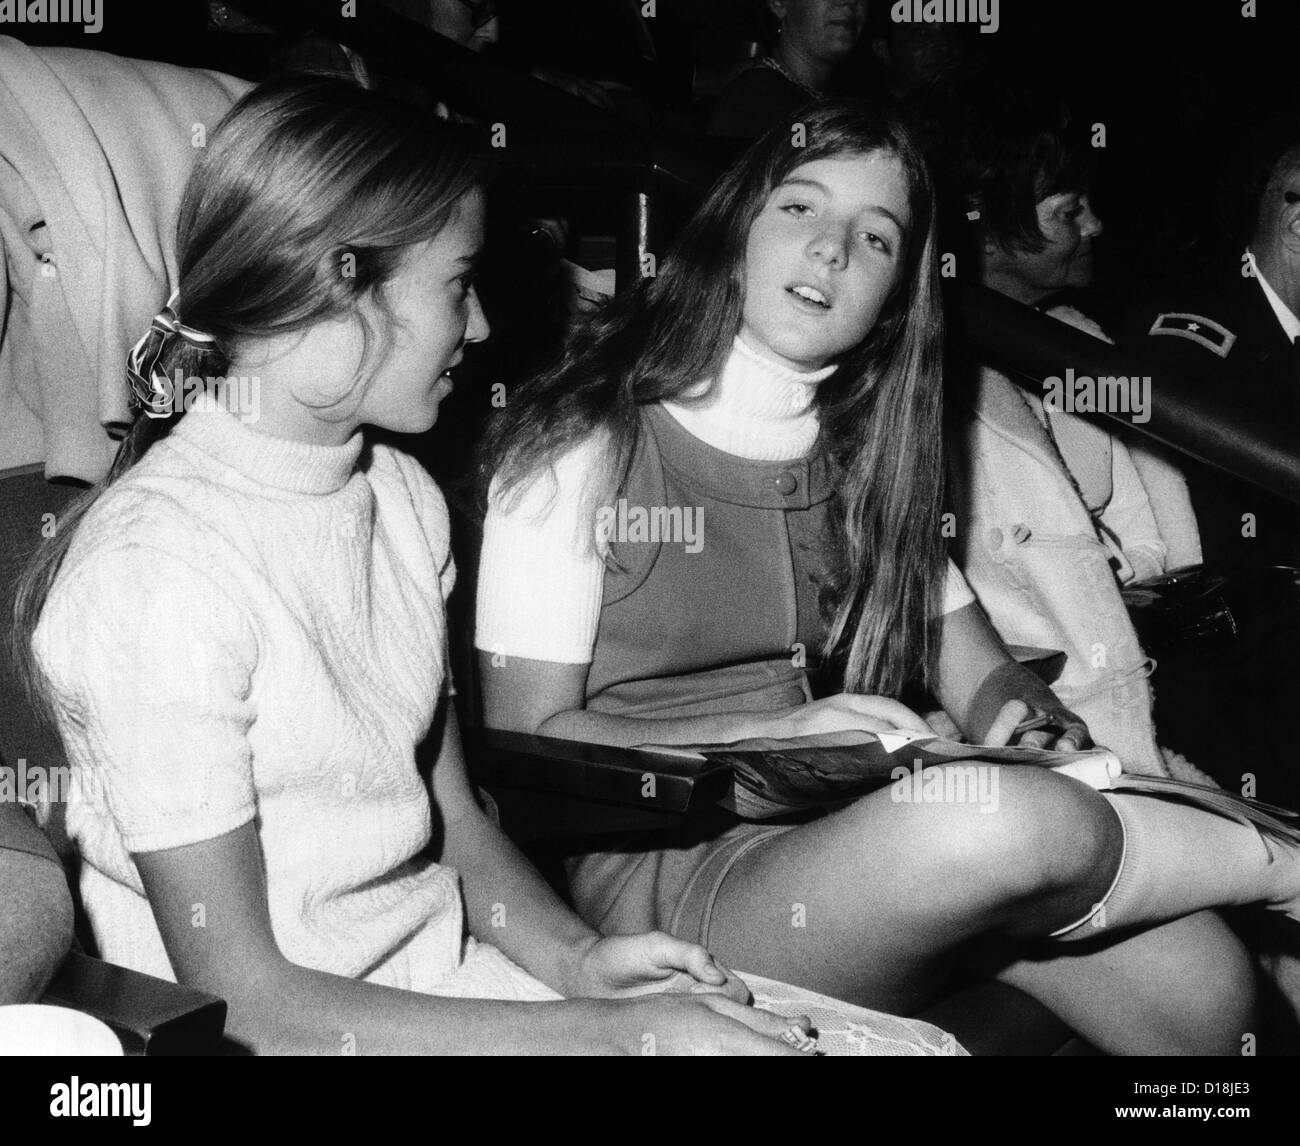 Caroline Kennedy, almost 14 years old, with a friend at the National Horse Show at Madision Square Garden. Nov. Stock Photo